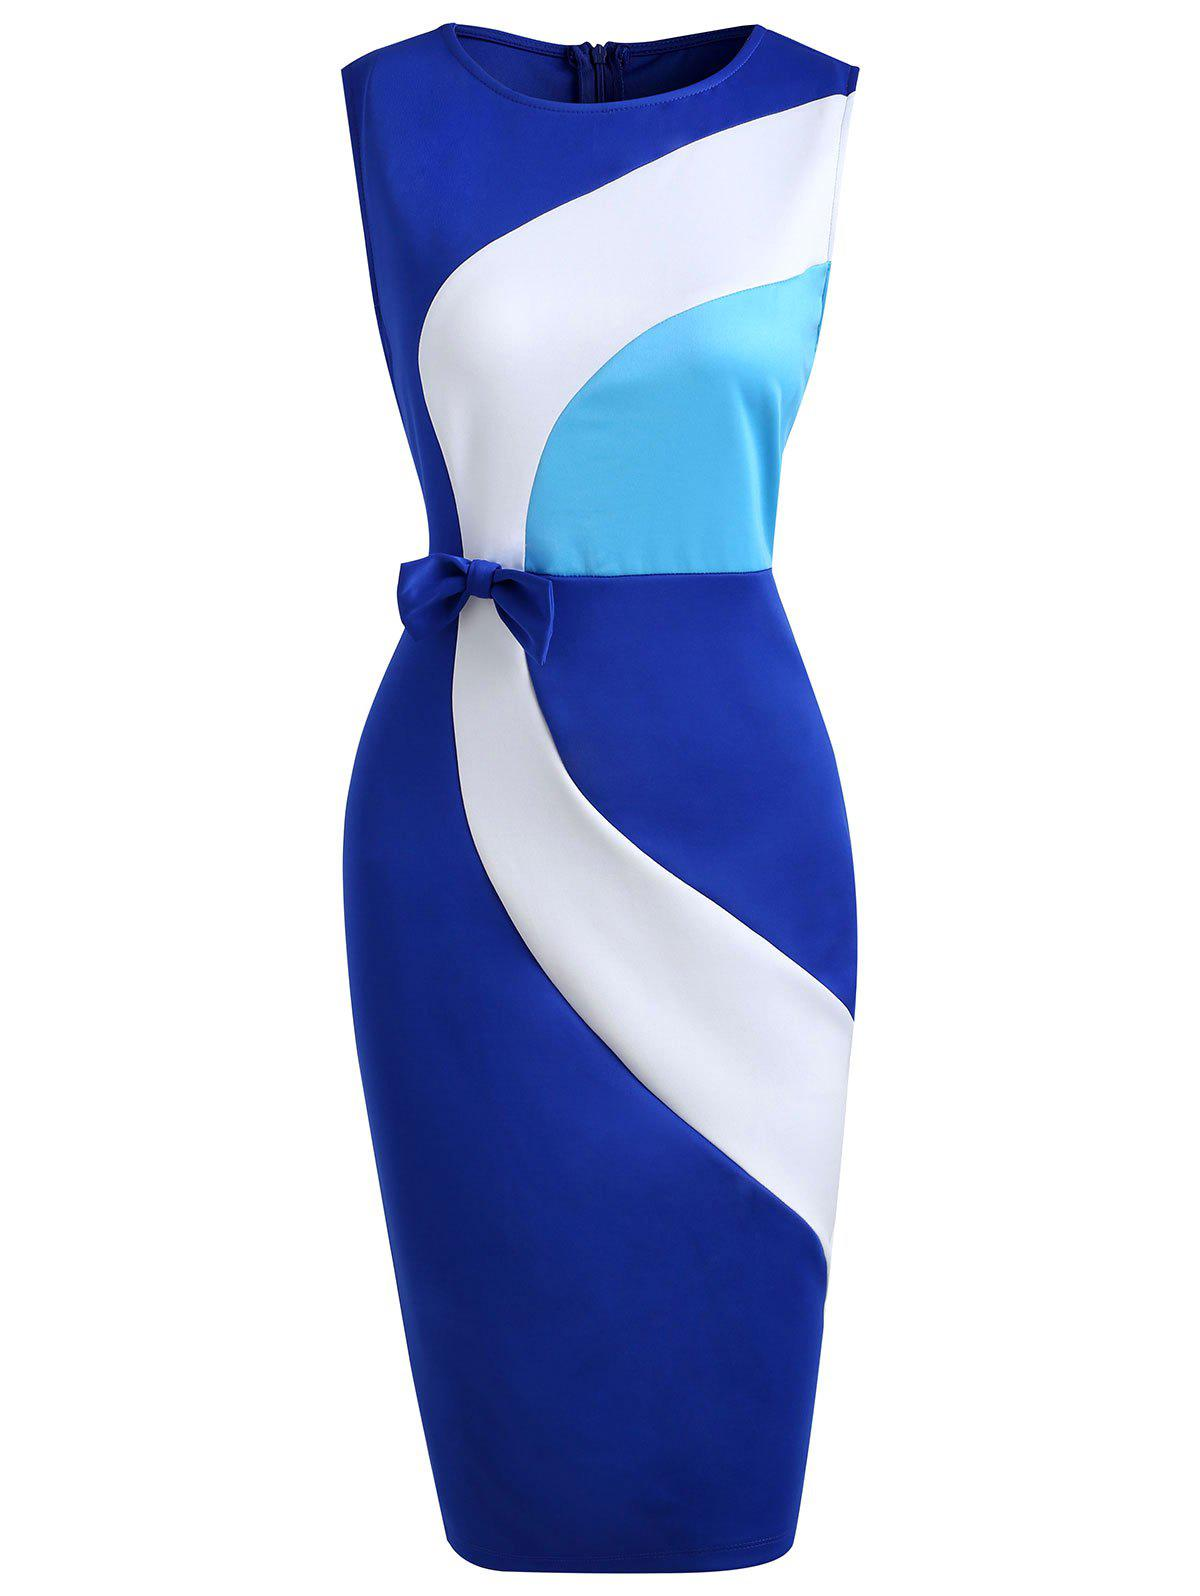 Chic Bowknot Embellished Color Block Bodycon Dress